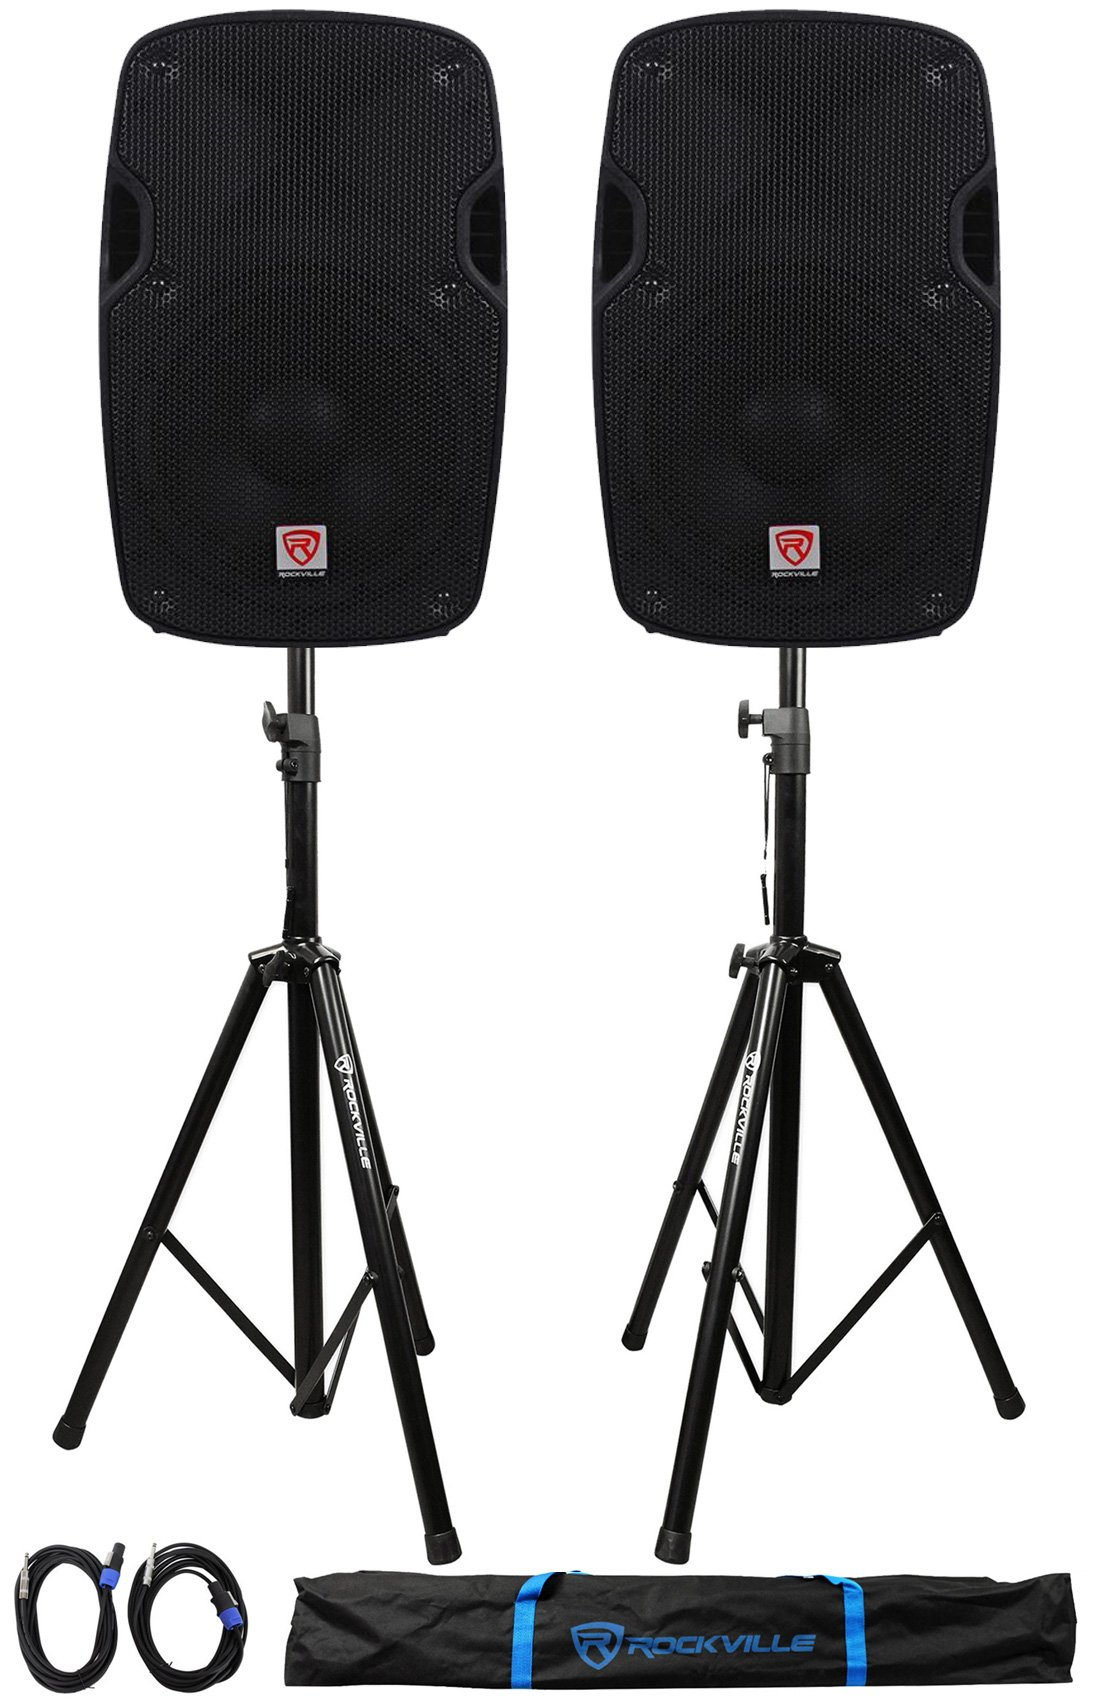 2) Rockville SPG84 8 Passive 800W DJ PA Speakers 4 Ohm 2) Stands+2) Cables+Case by Rockville